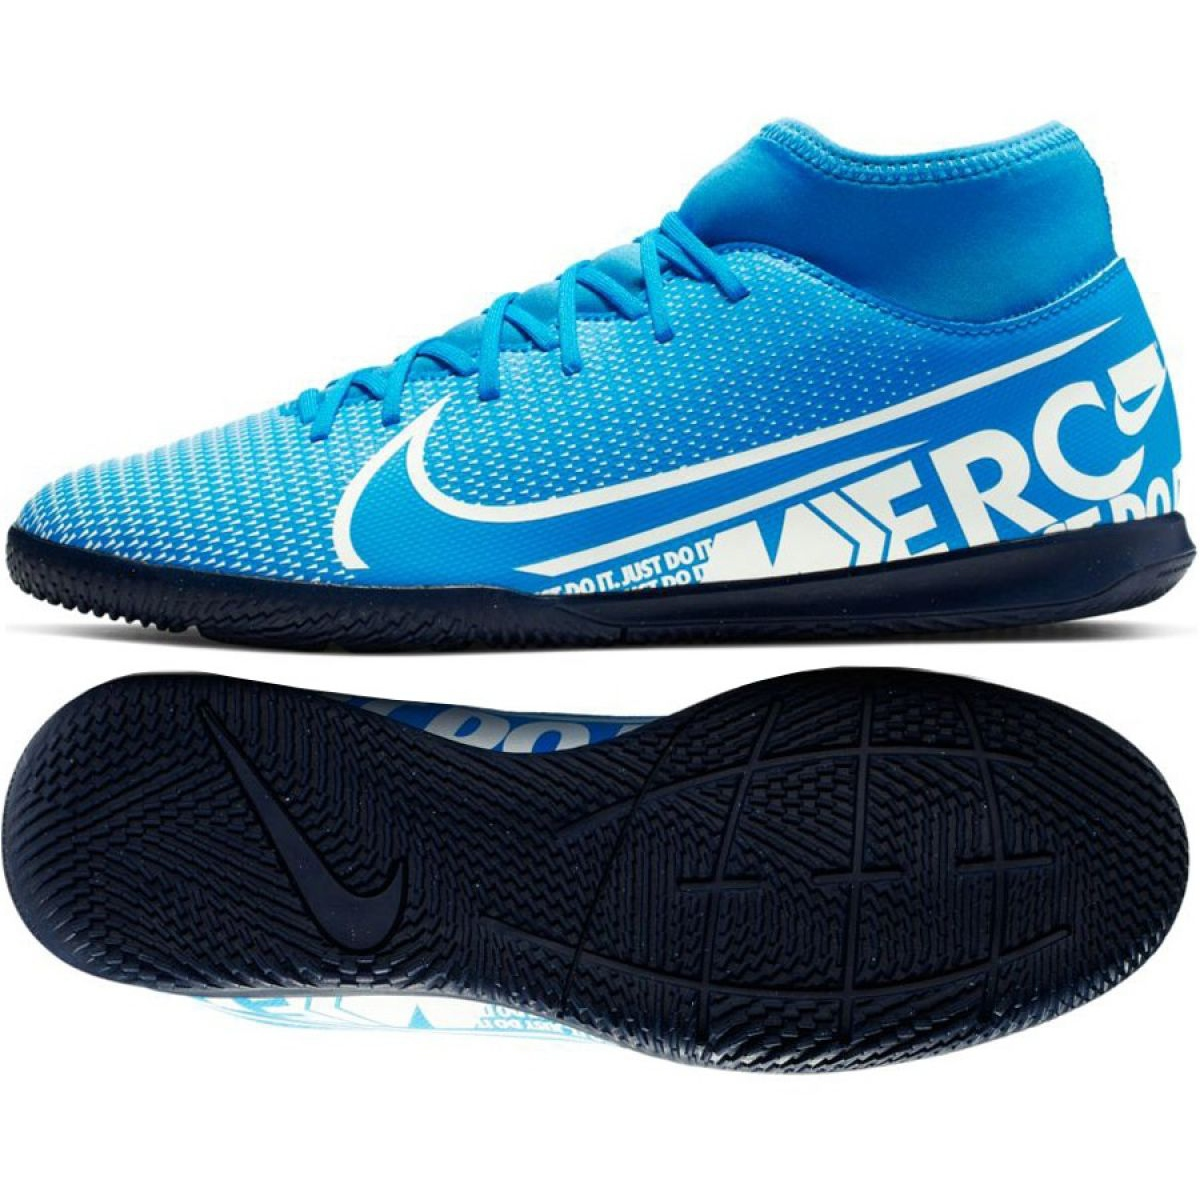 really comfortable nice shoes buy best Hallenschuhe Nike Mercurial Superfly 7 Club Ic M AT7979-414 blau blau